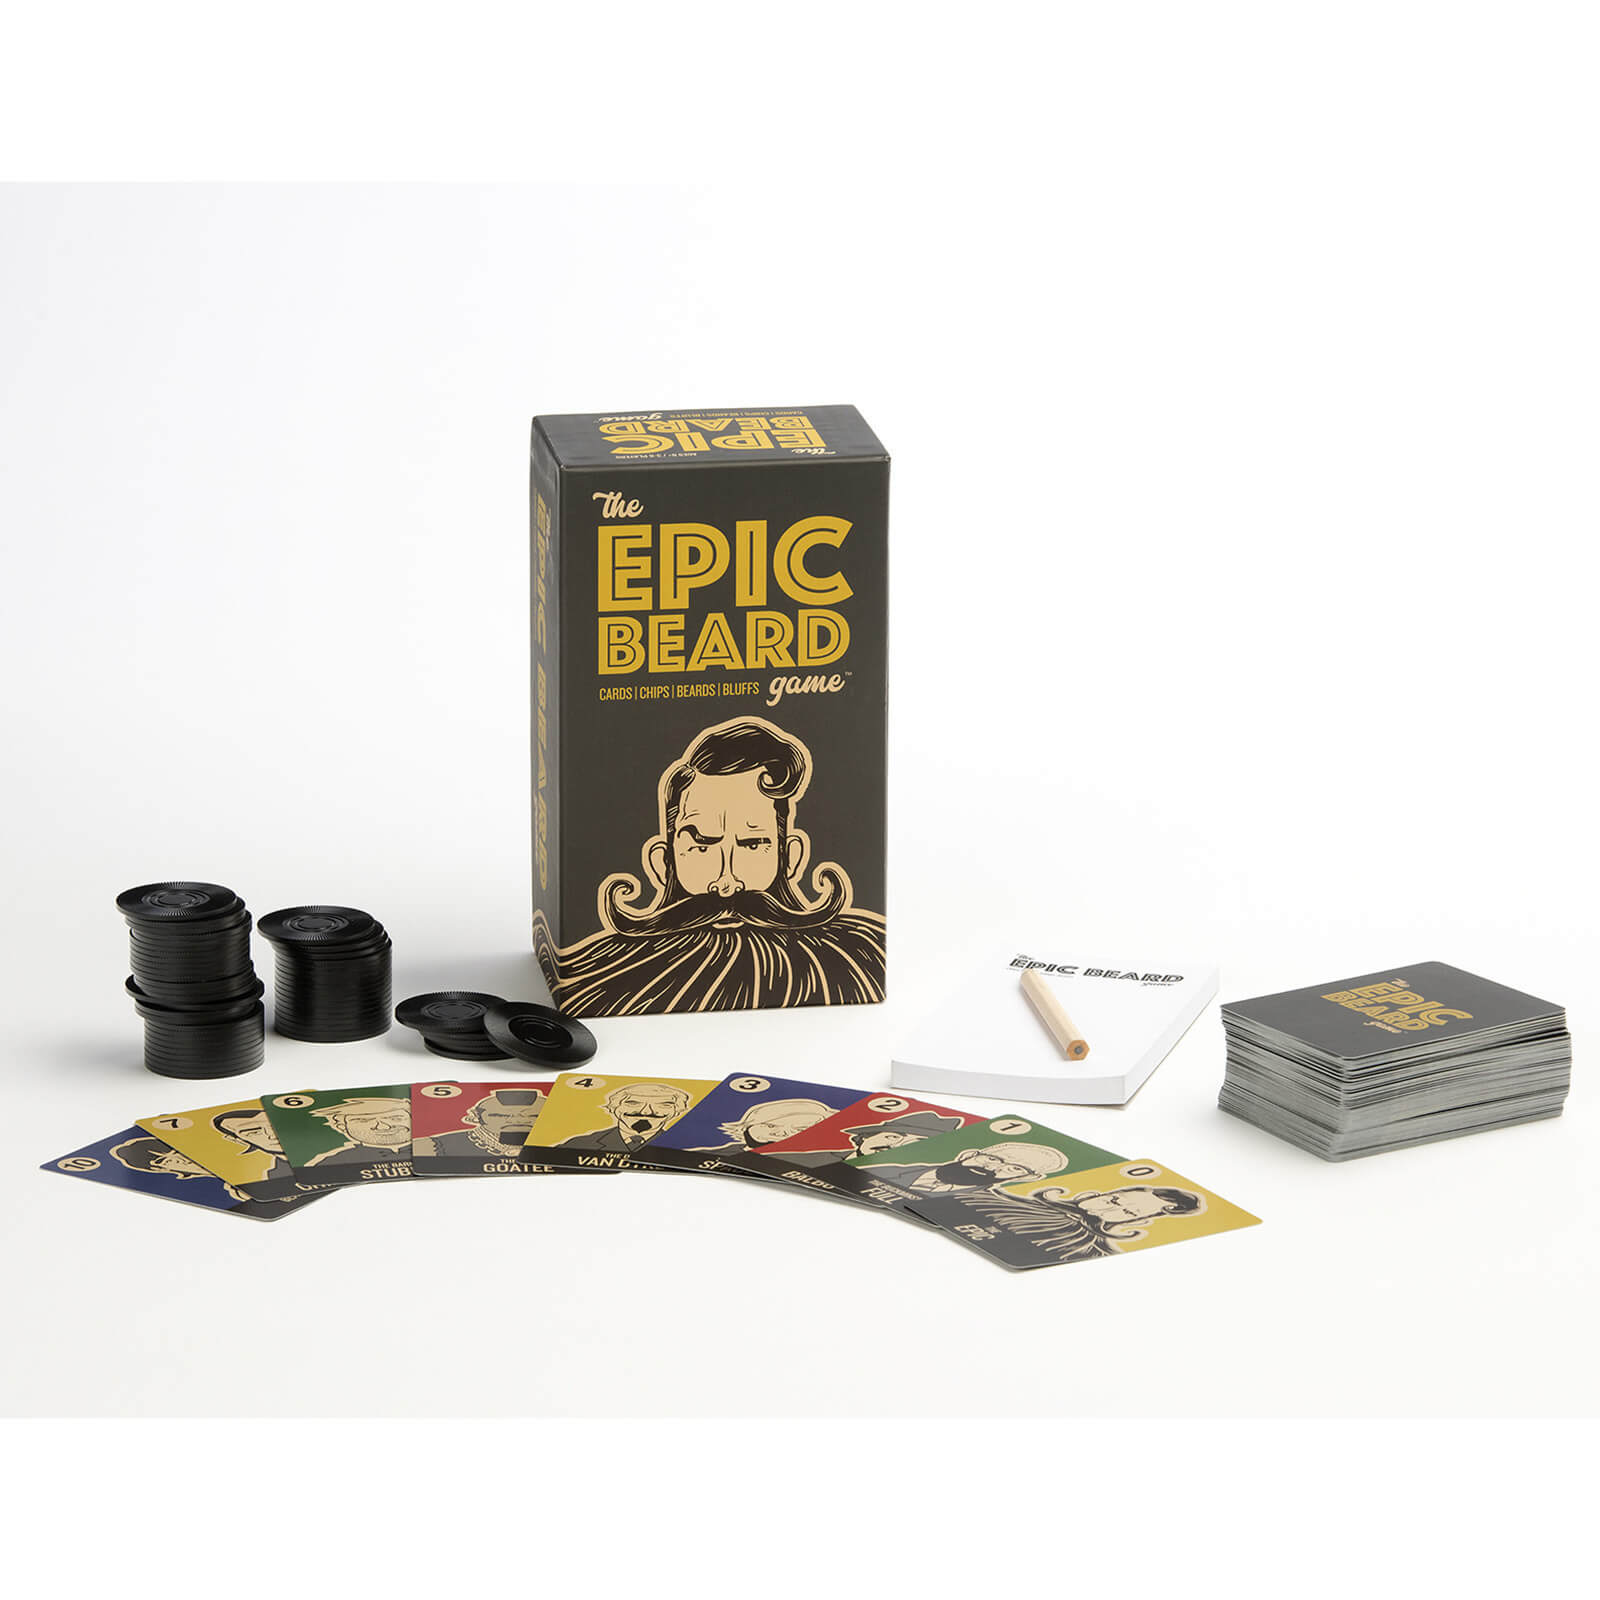 Image of The Epic Beard Game Card Game